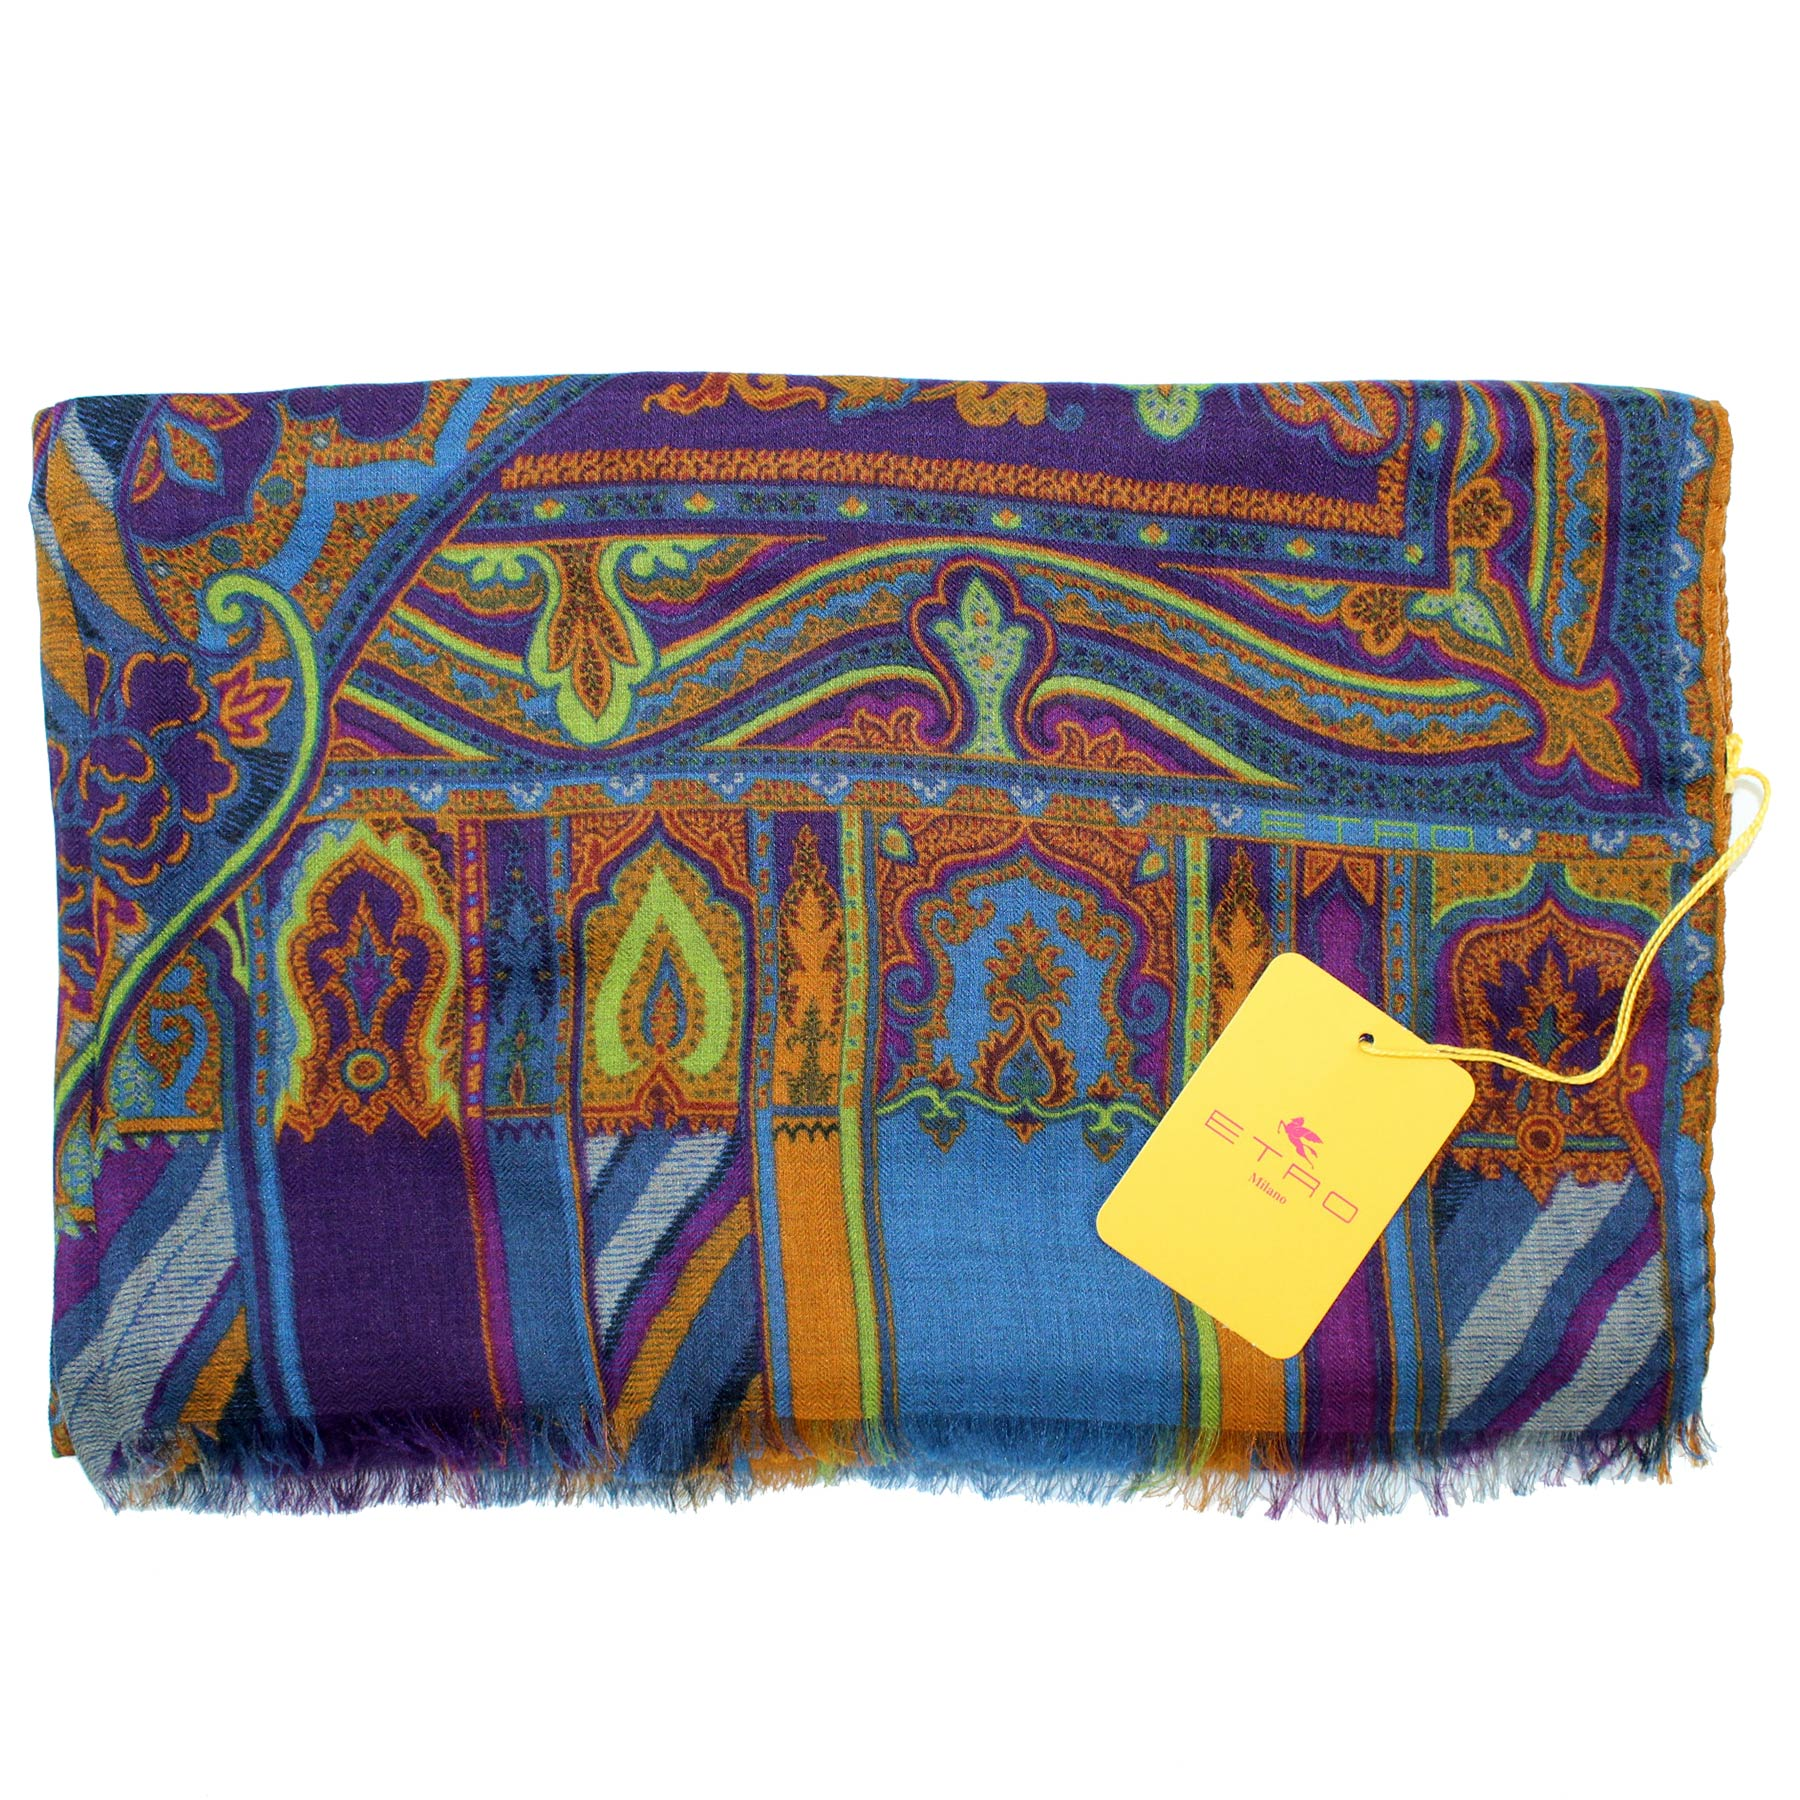 Etro Scarf Purple Blue Lime Ornamental Design - Modal Cashmere Shawl